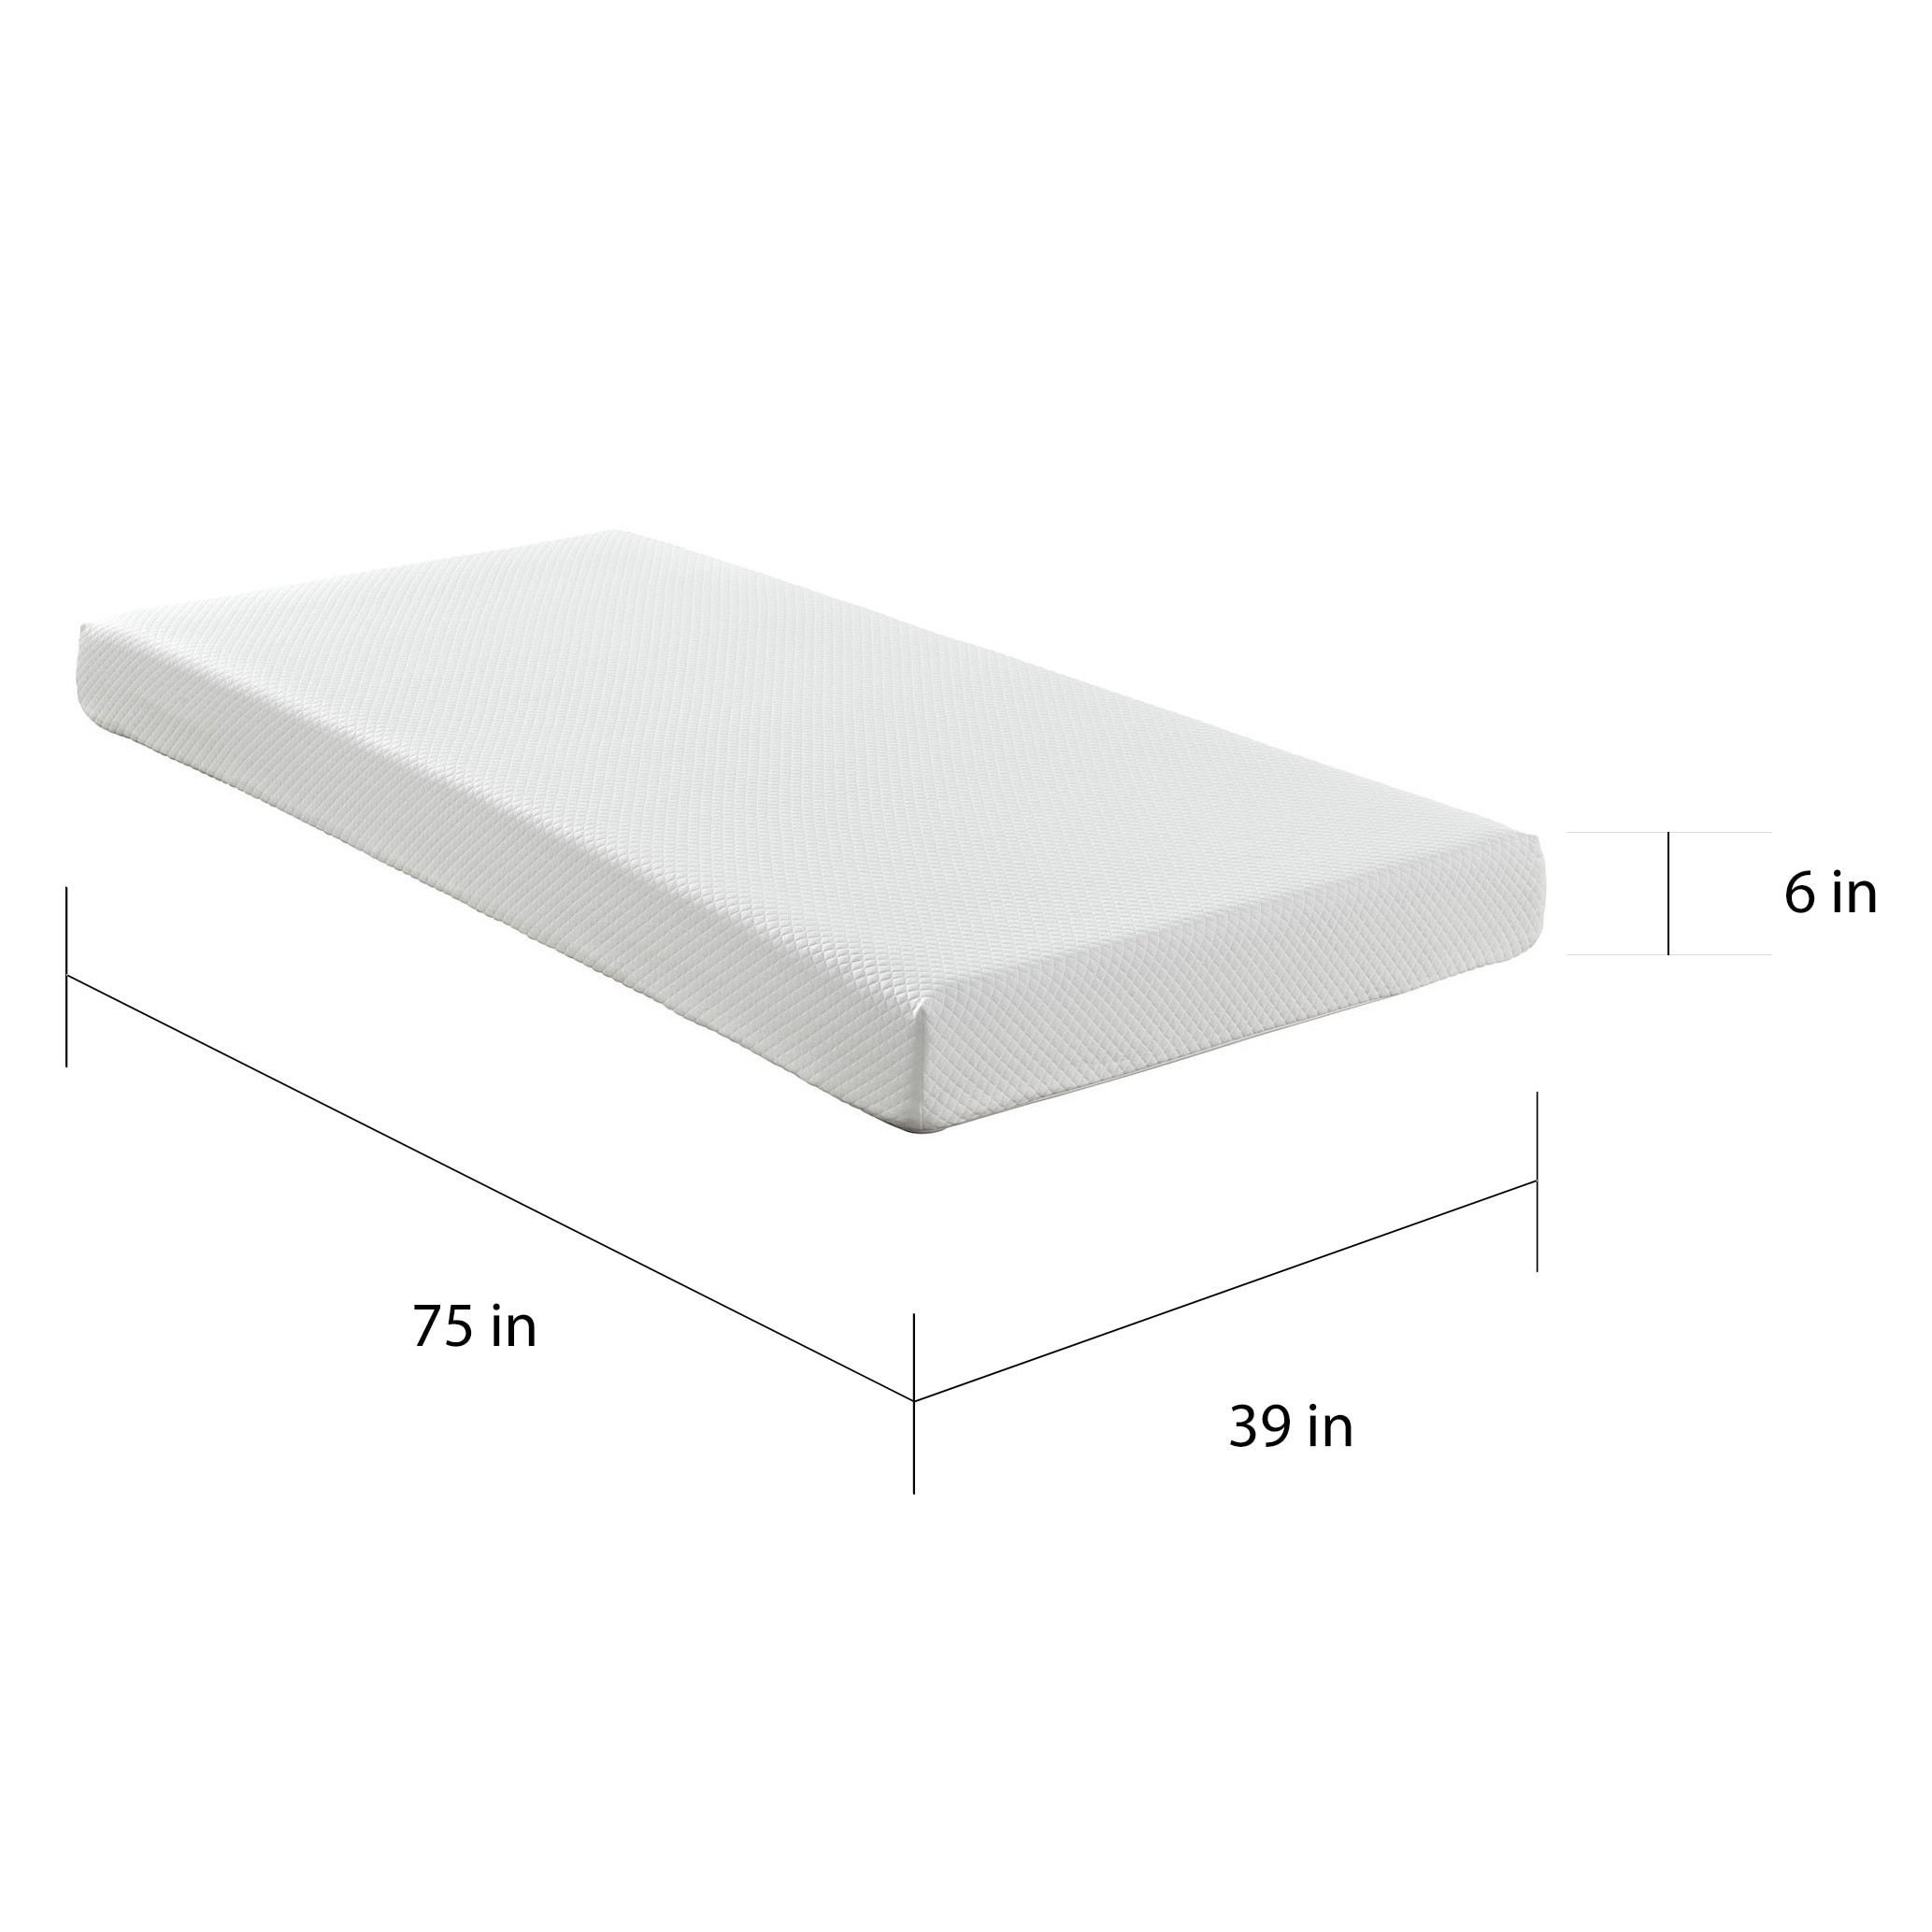 Aveline 6 inch Gel Infused Memory Foam Twin size Mattress Free